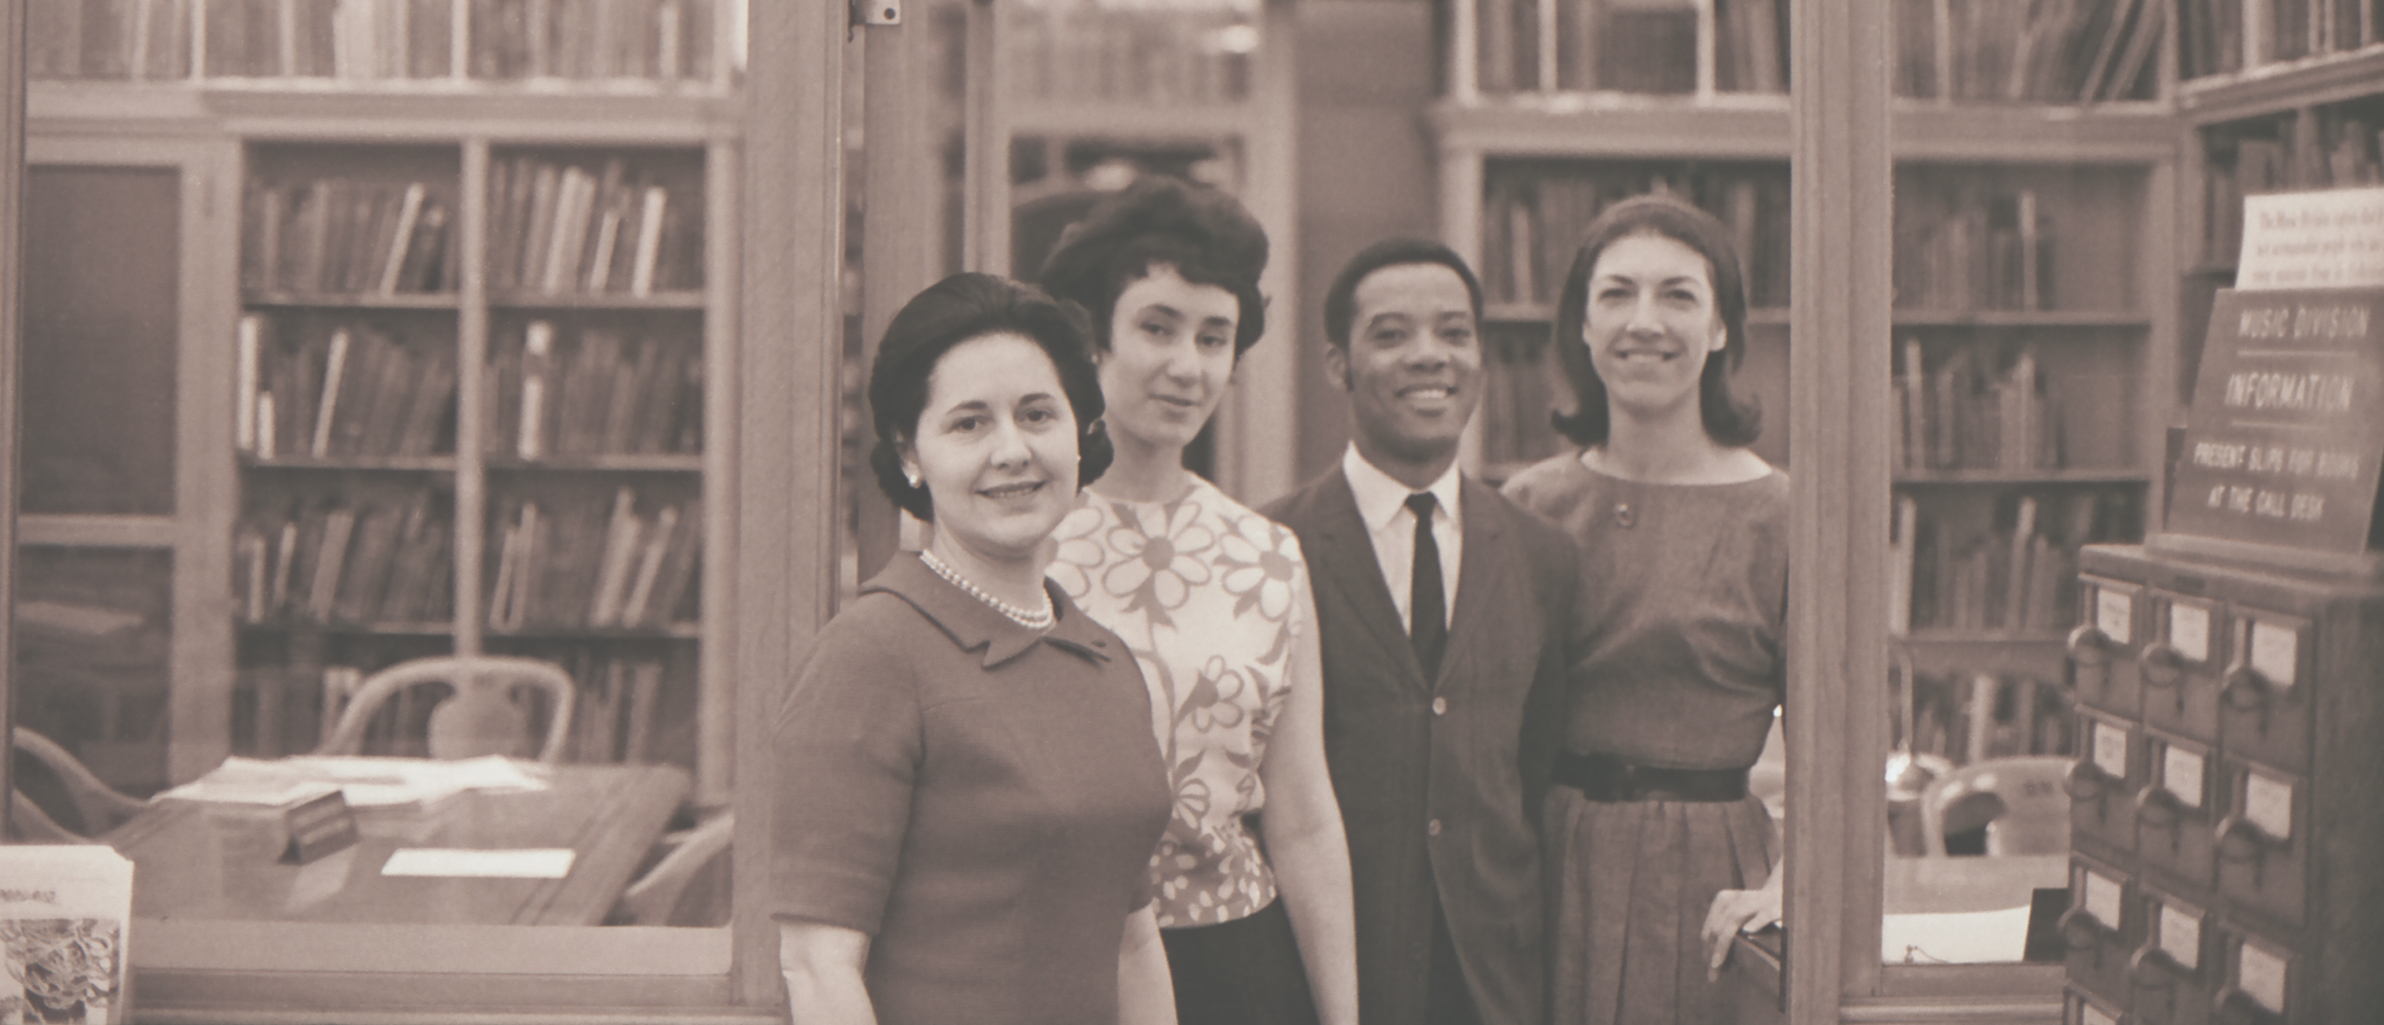 an archive photo of Staff members of the Dance Collection.